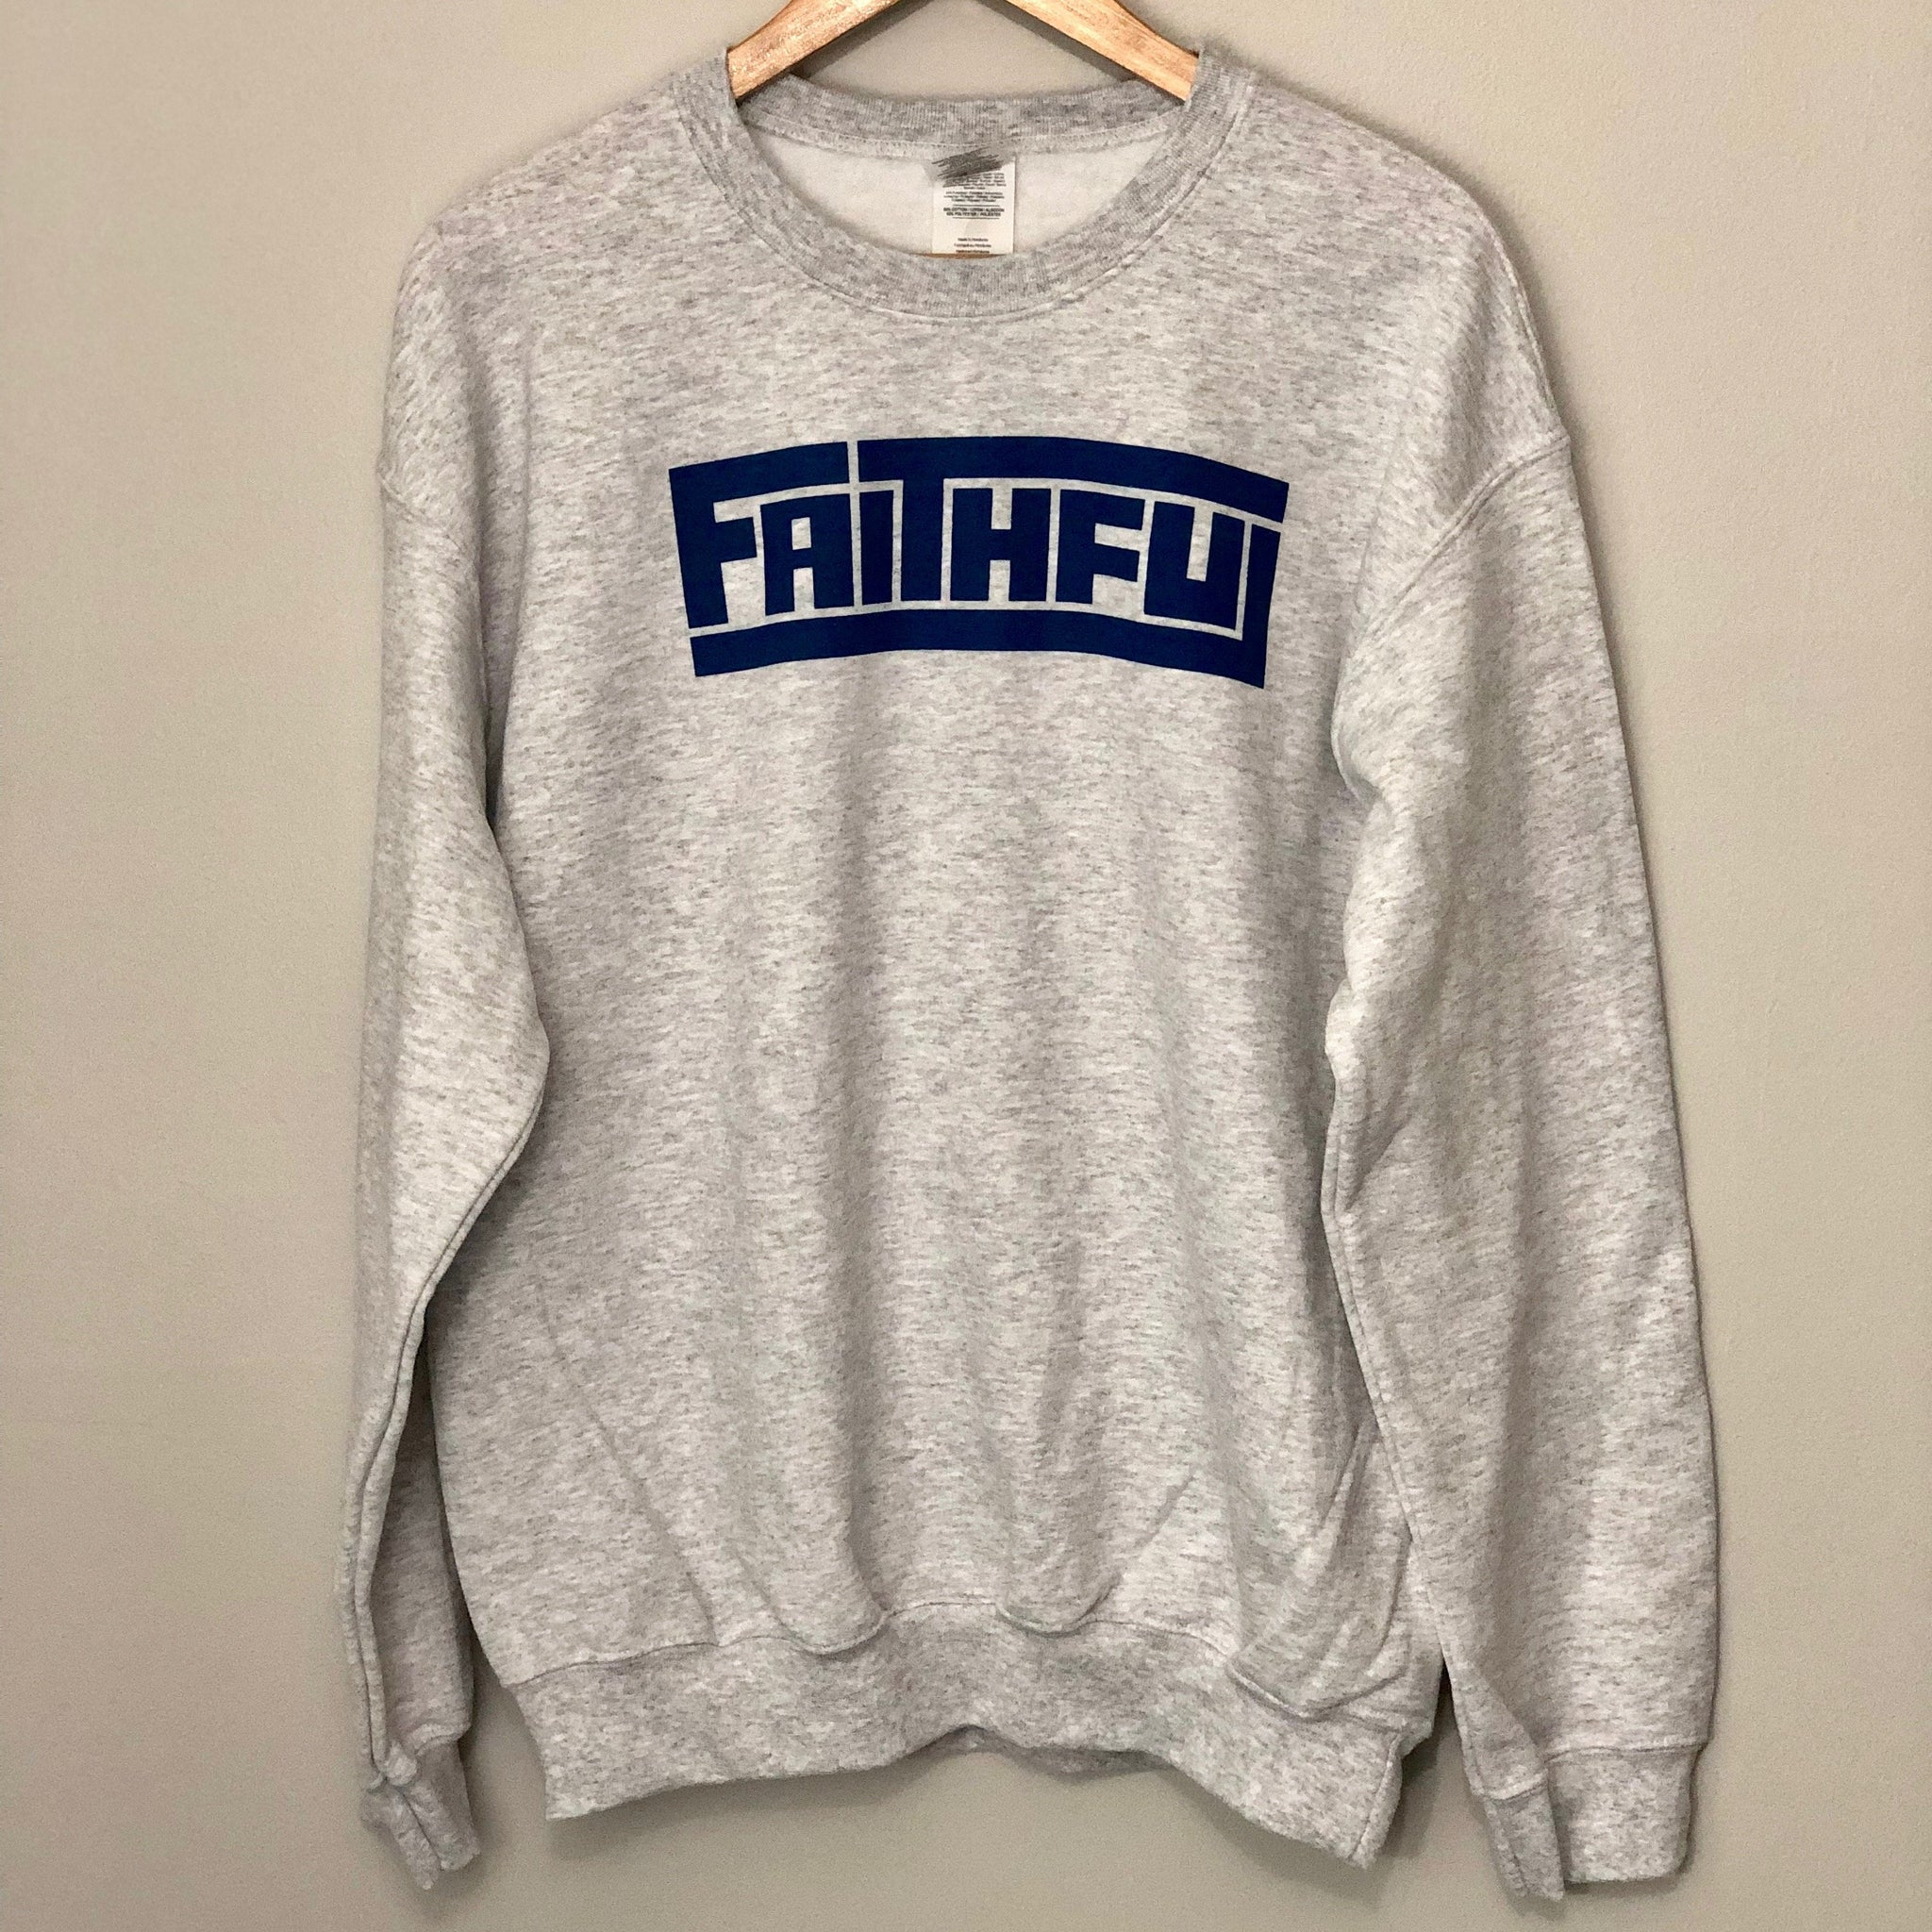 Faithful Crewneck